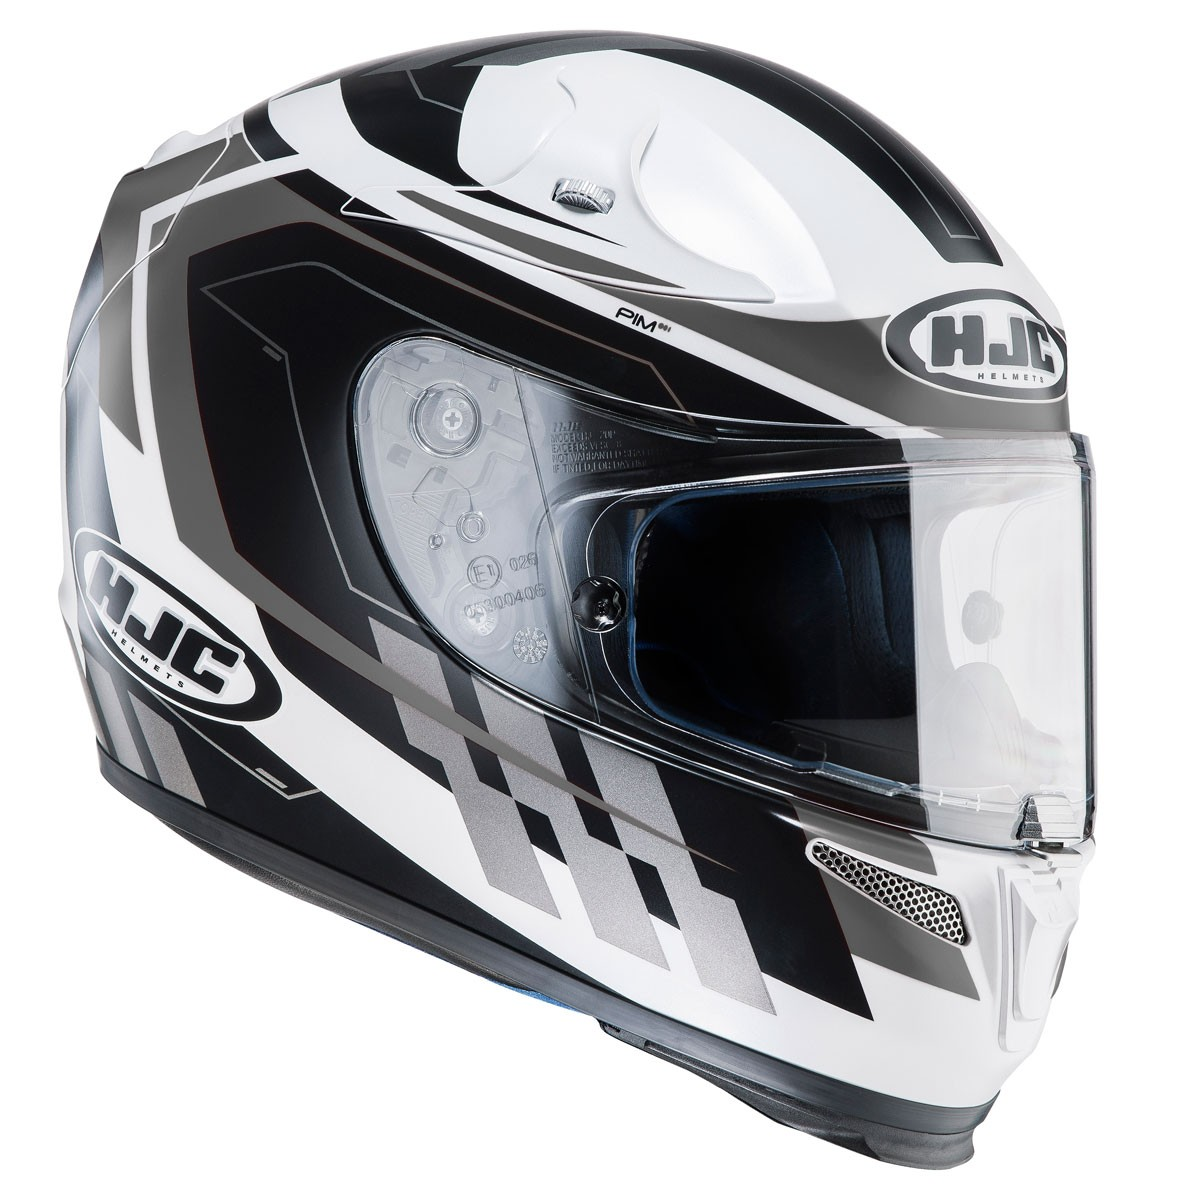 HJC RPHA 10 Plus full face helmet Cyper MC5SF